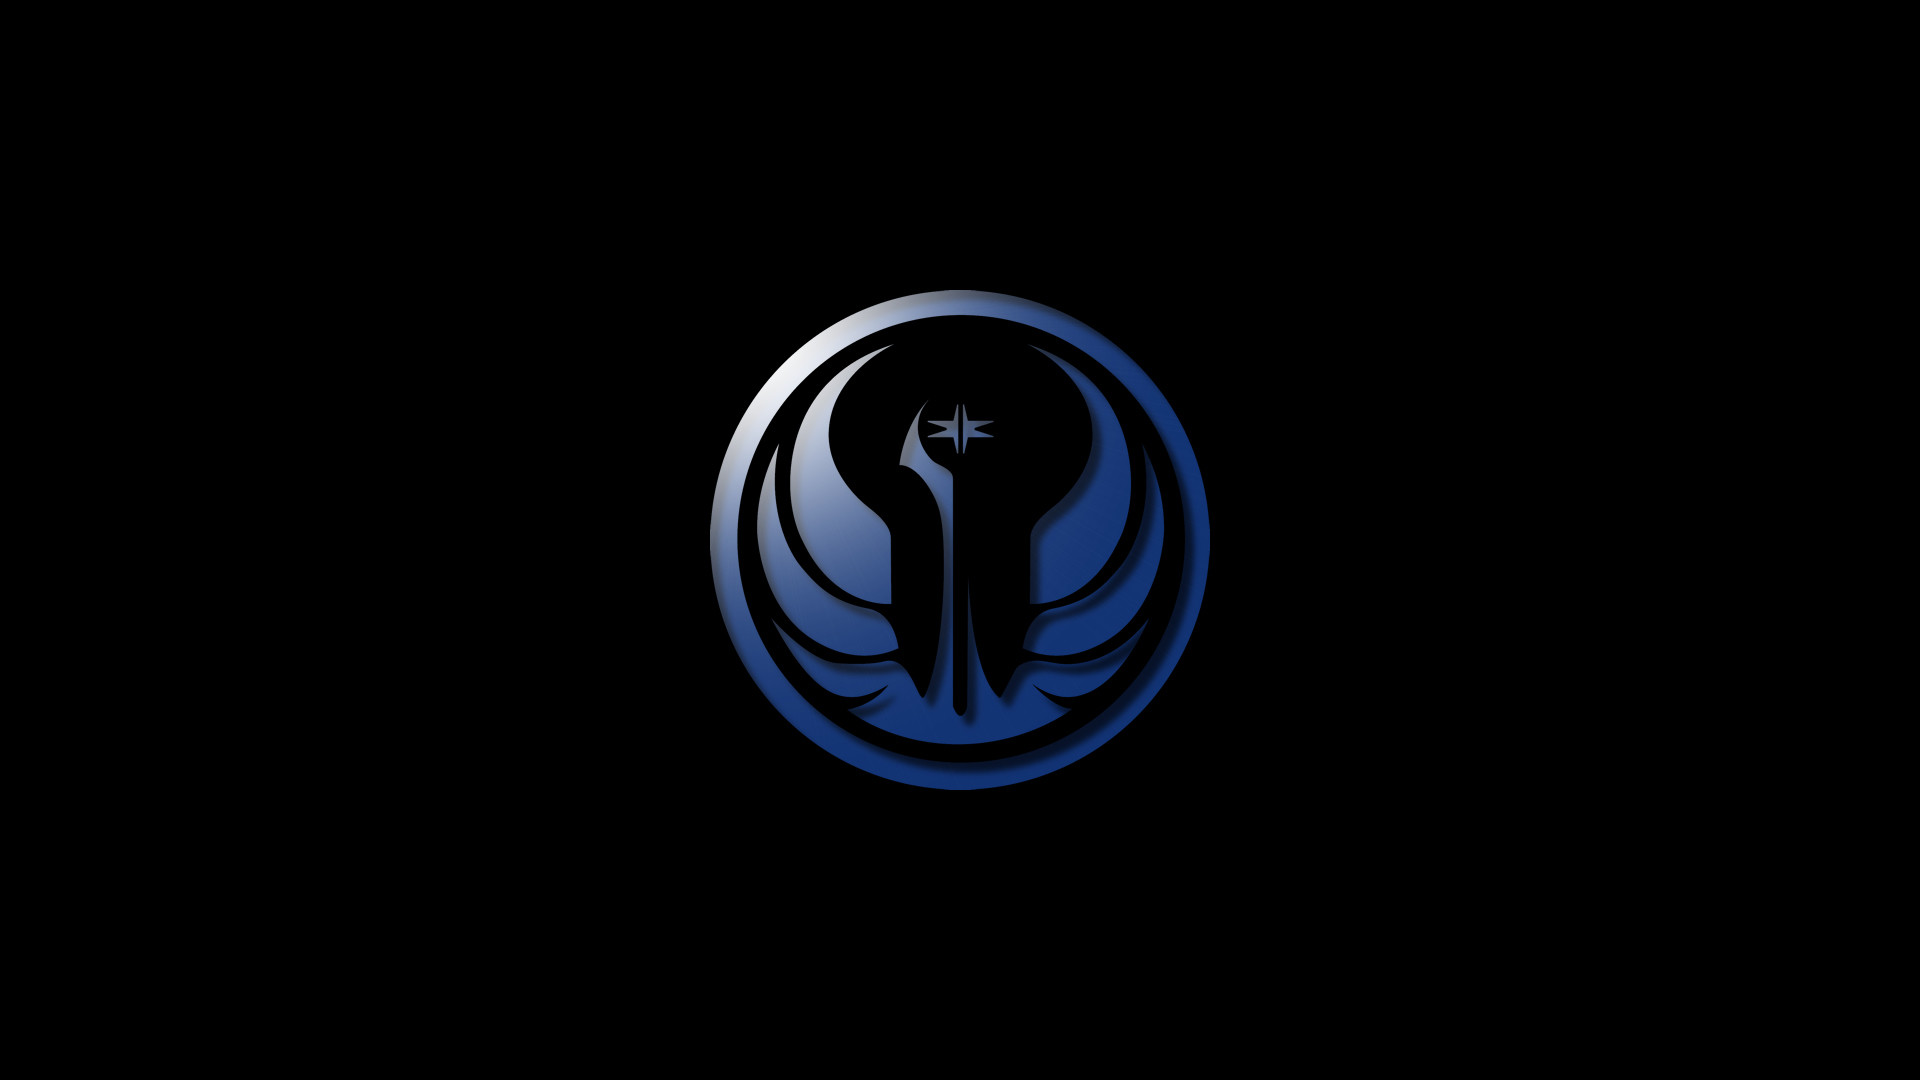 The Simple SWTOR Republic Wallpaper by DistantWanderer The Simple SWTOR  Republic Wallpaper by DistantWanderer